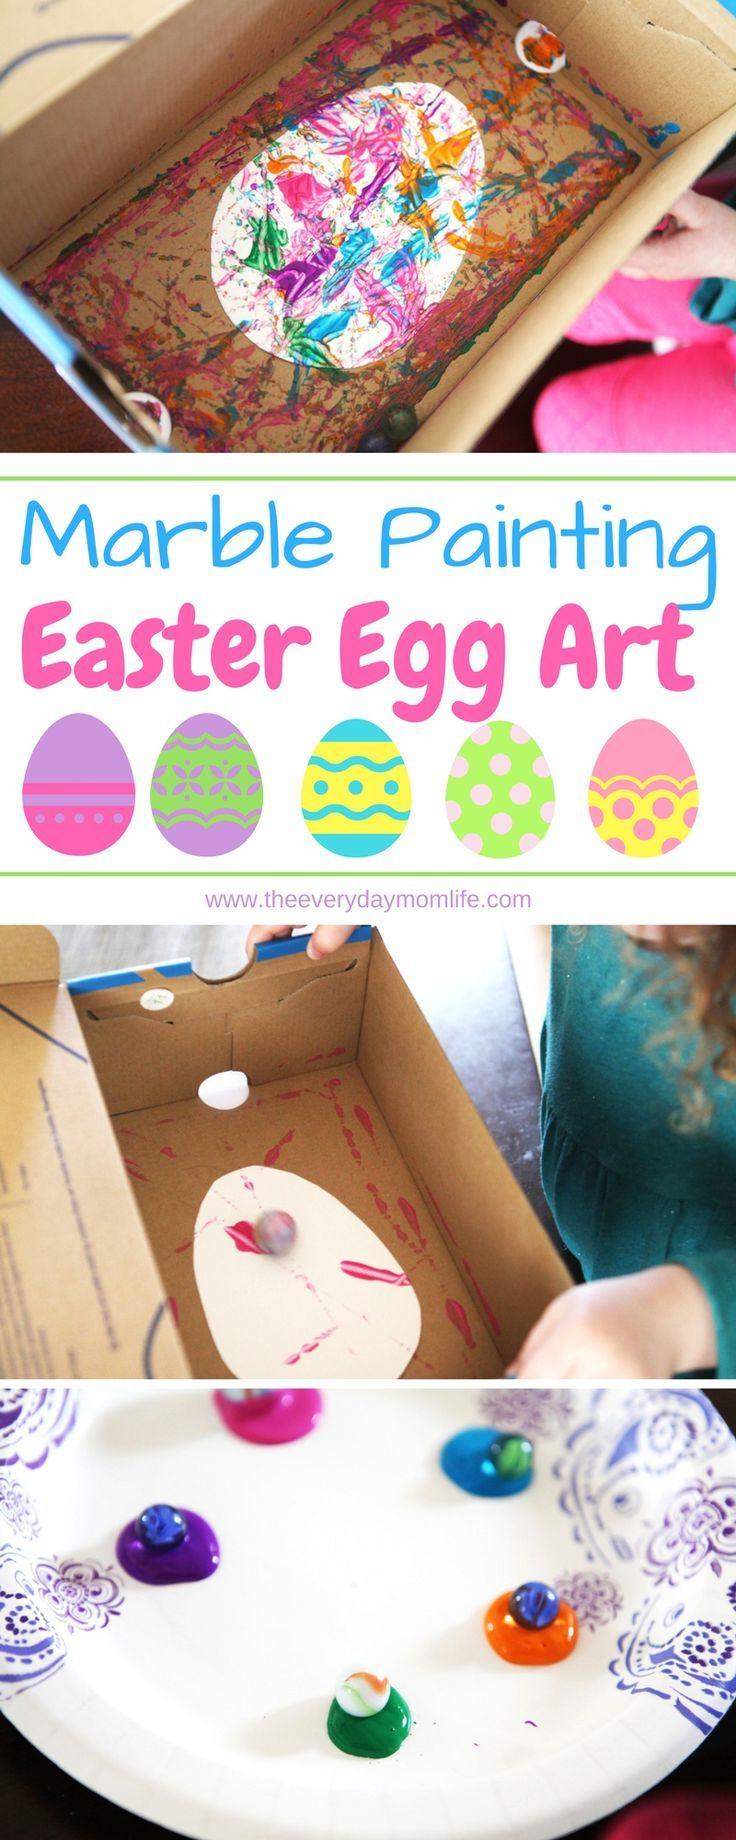 Marble Easter egg painting craft for kids that's fun, easy and turns out beautiful each time. This kids craft can be done by preschoolers, elementary kids and even older kids will have fun.